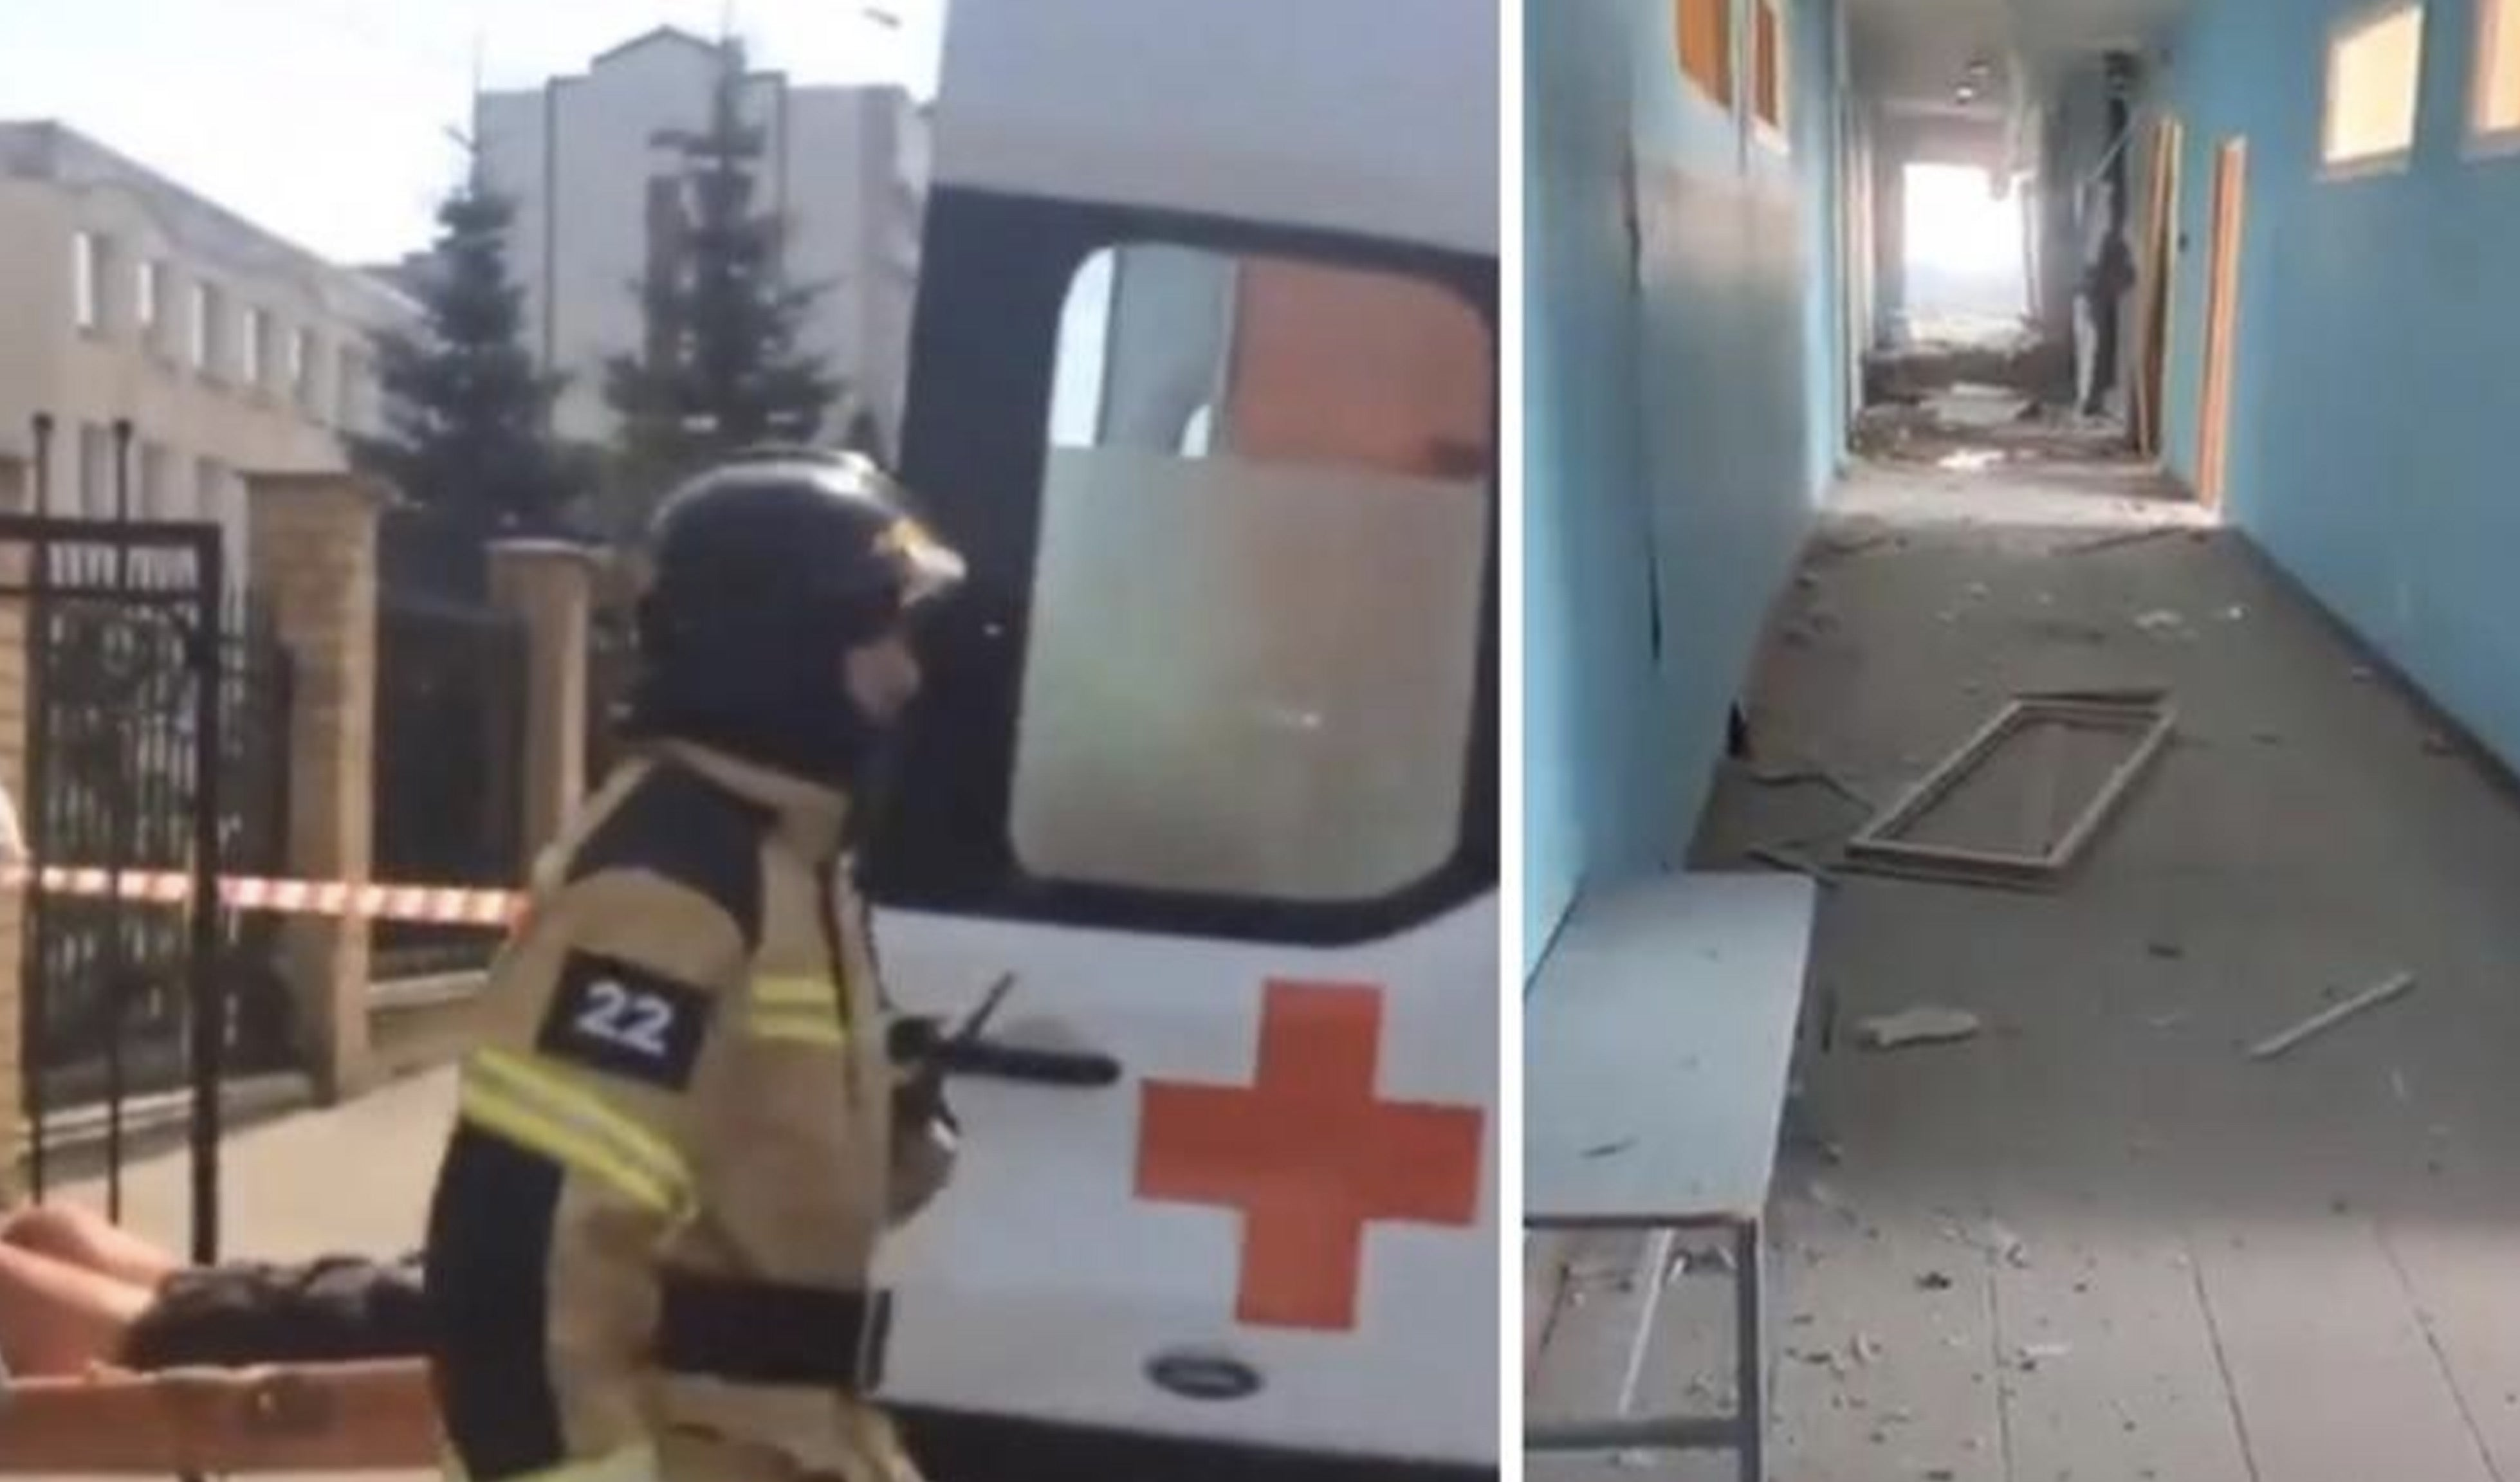 At least 9 dead and several injured in a school shooting in Russia, the shooter is a teenager.